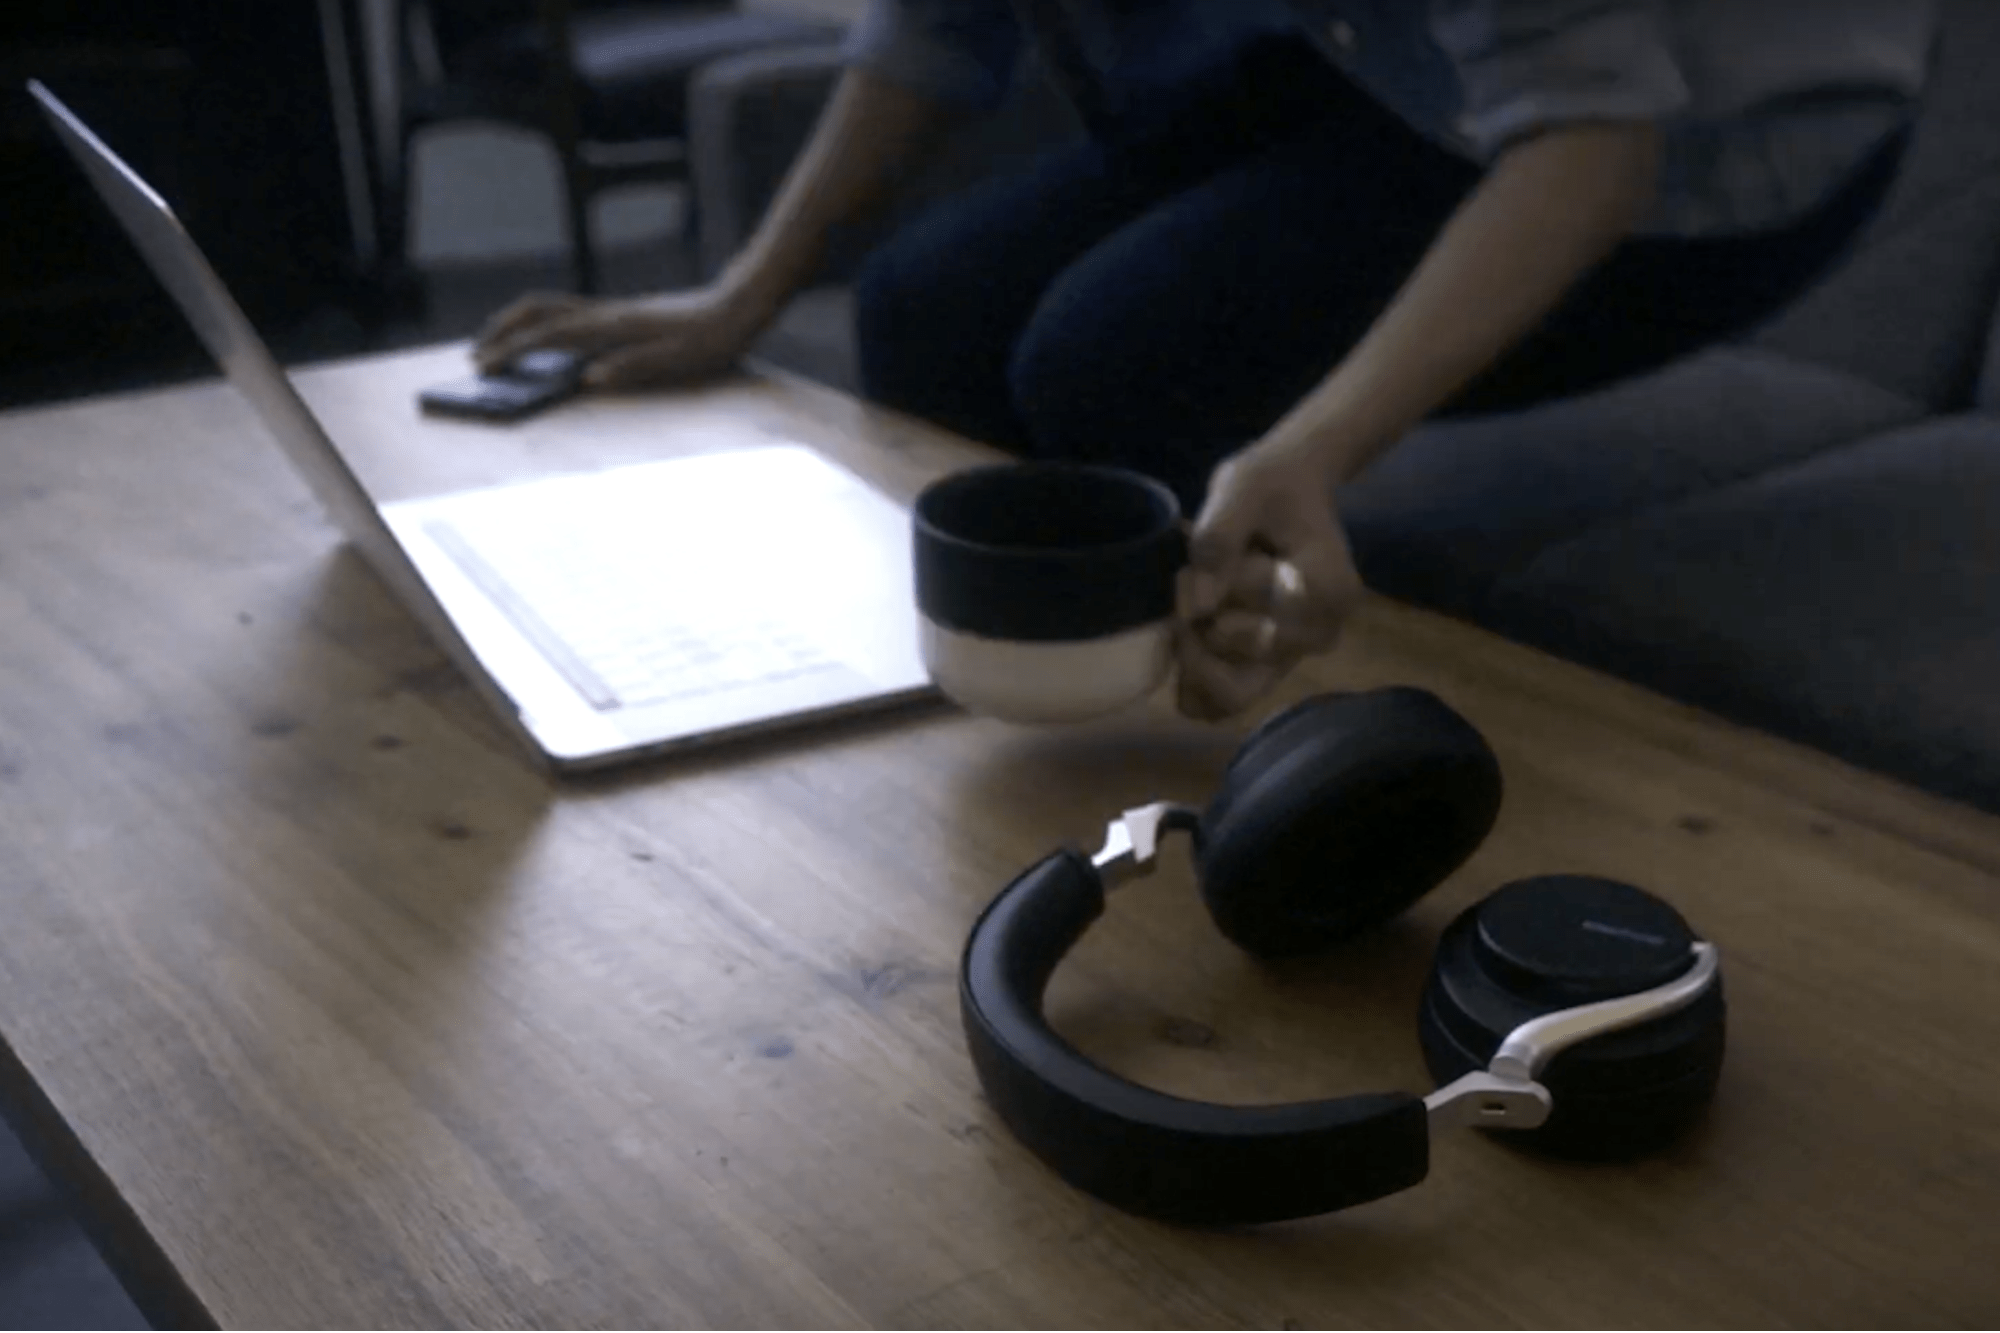 Stay Productive While You Work From Home with These Shure Headphones